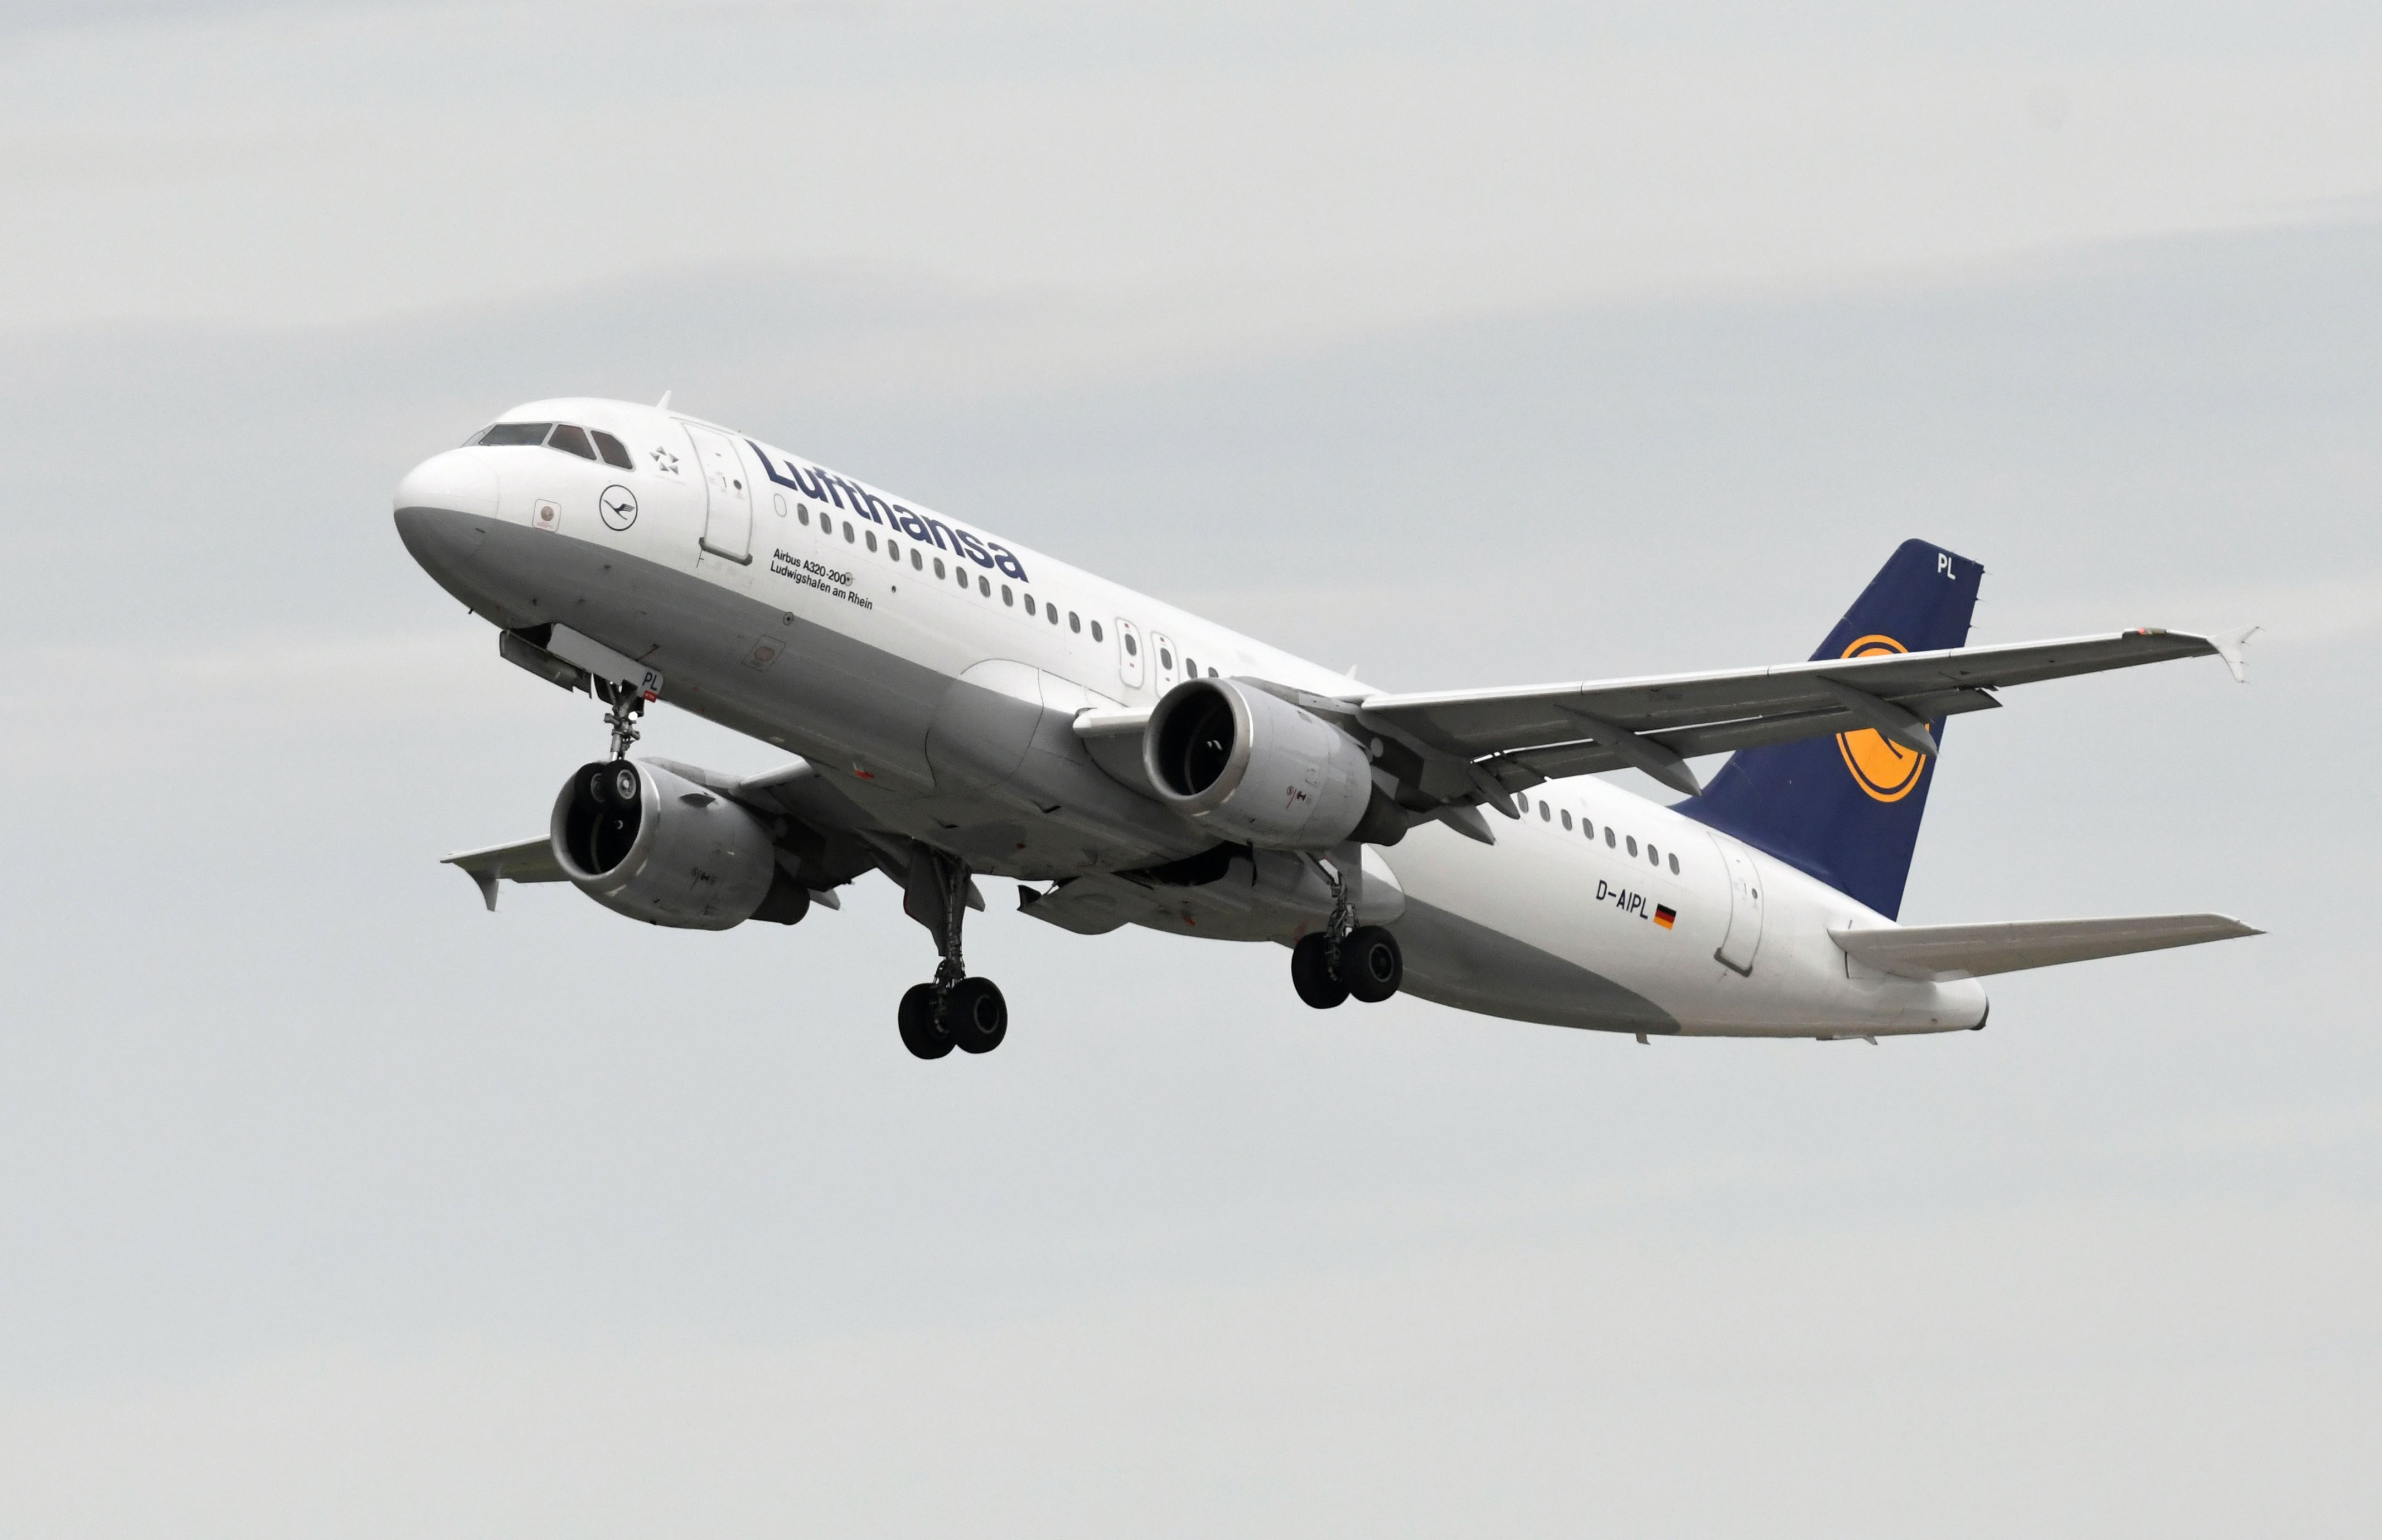 Lufthansa subsidiaries: German airports hit by Eurowings, Germanwings walkouts